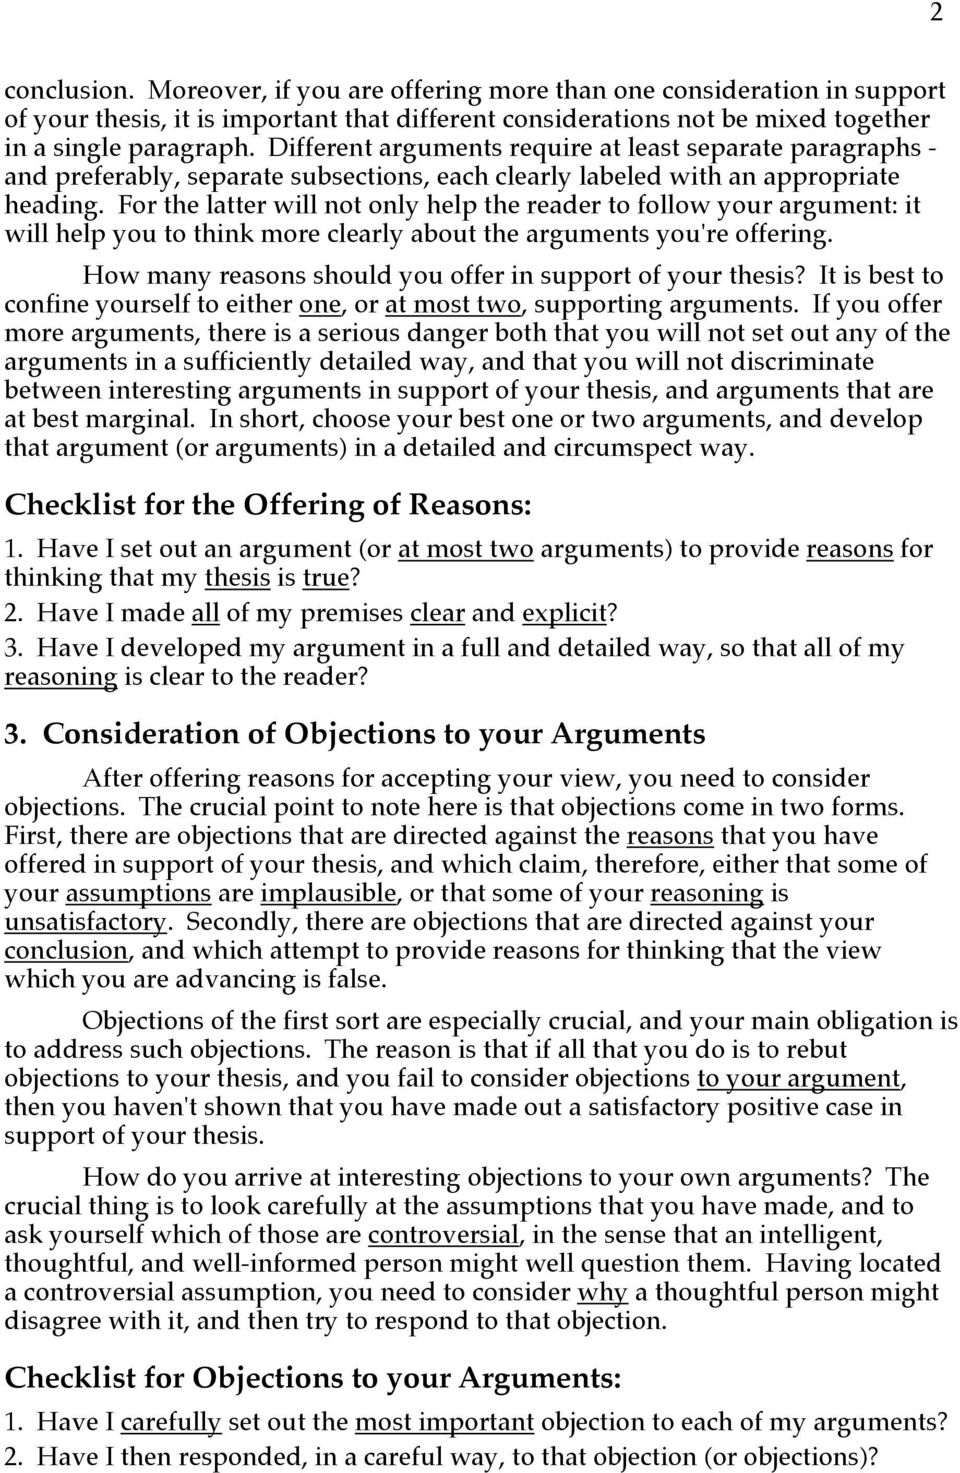 For the latter will not only help the reader to follow your argument: it will help you to think more clearly about the arguments you're offering.